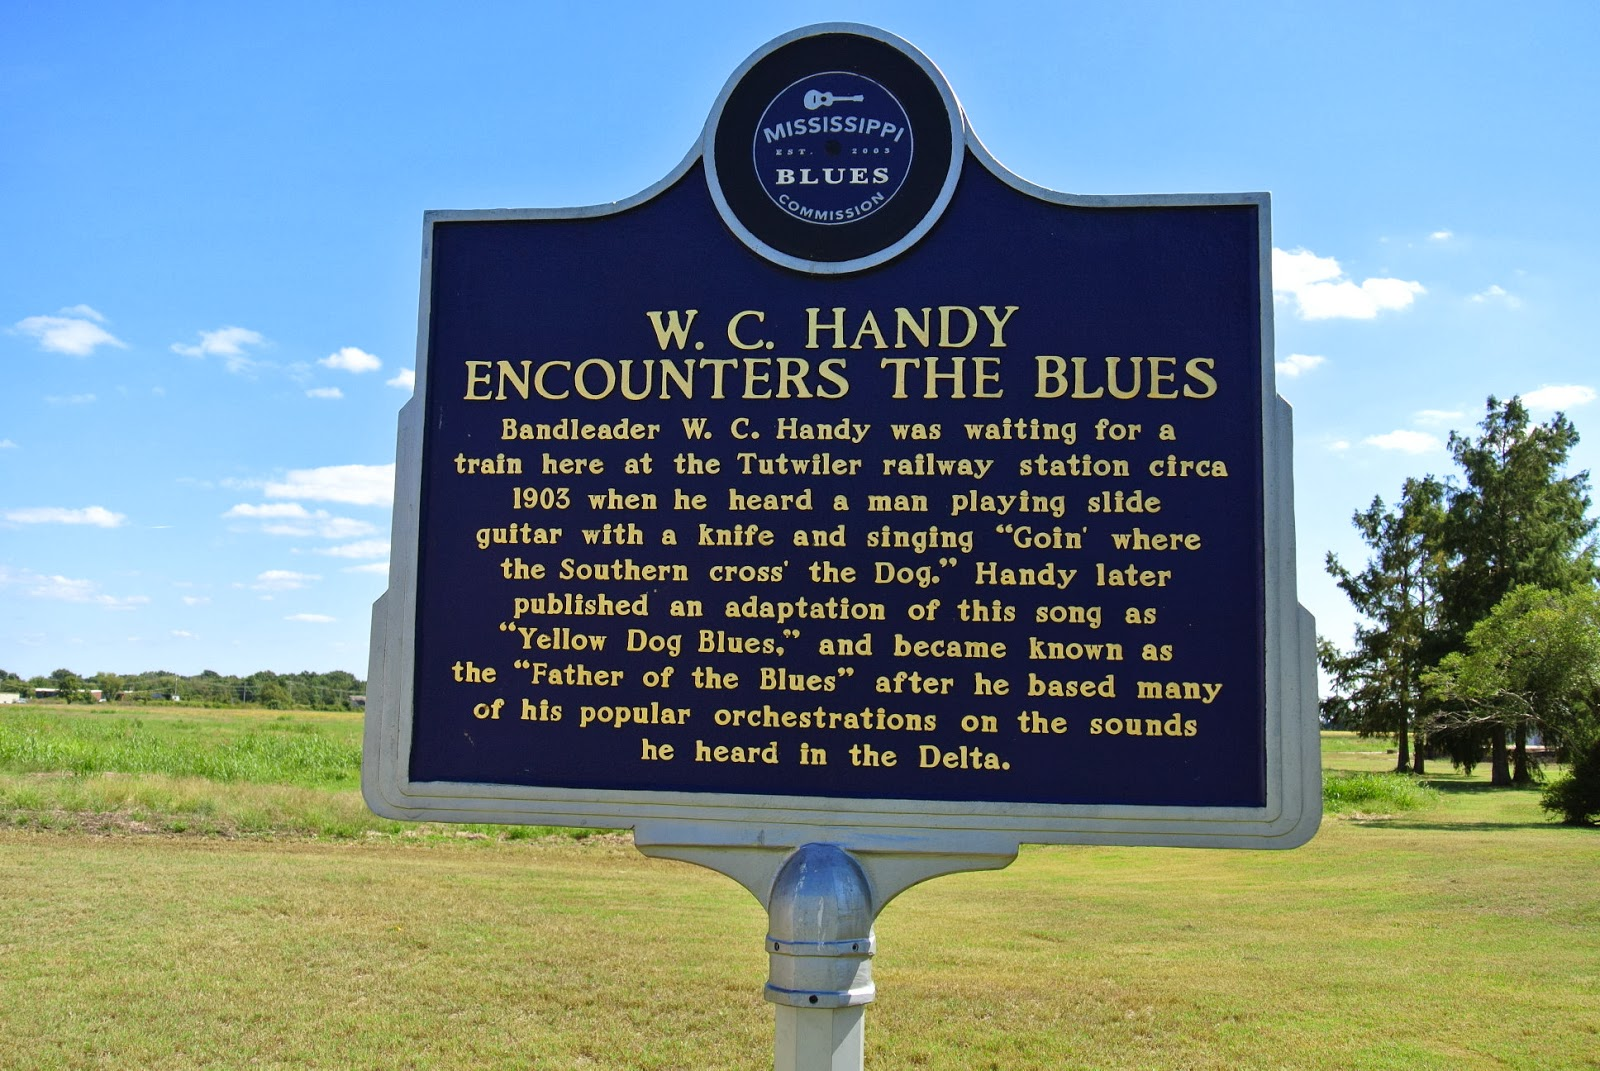 Part of the Mississippi Blues Trail, this historical marker was dedicated by the Mississippi Blues Commission in 2009.